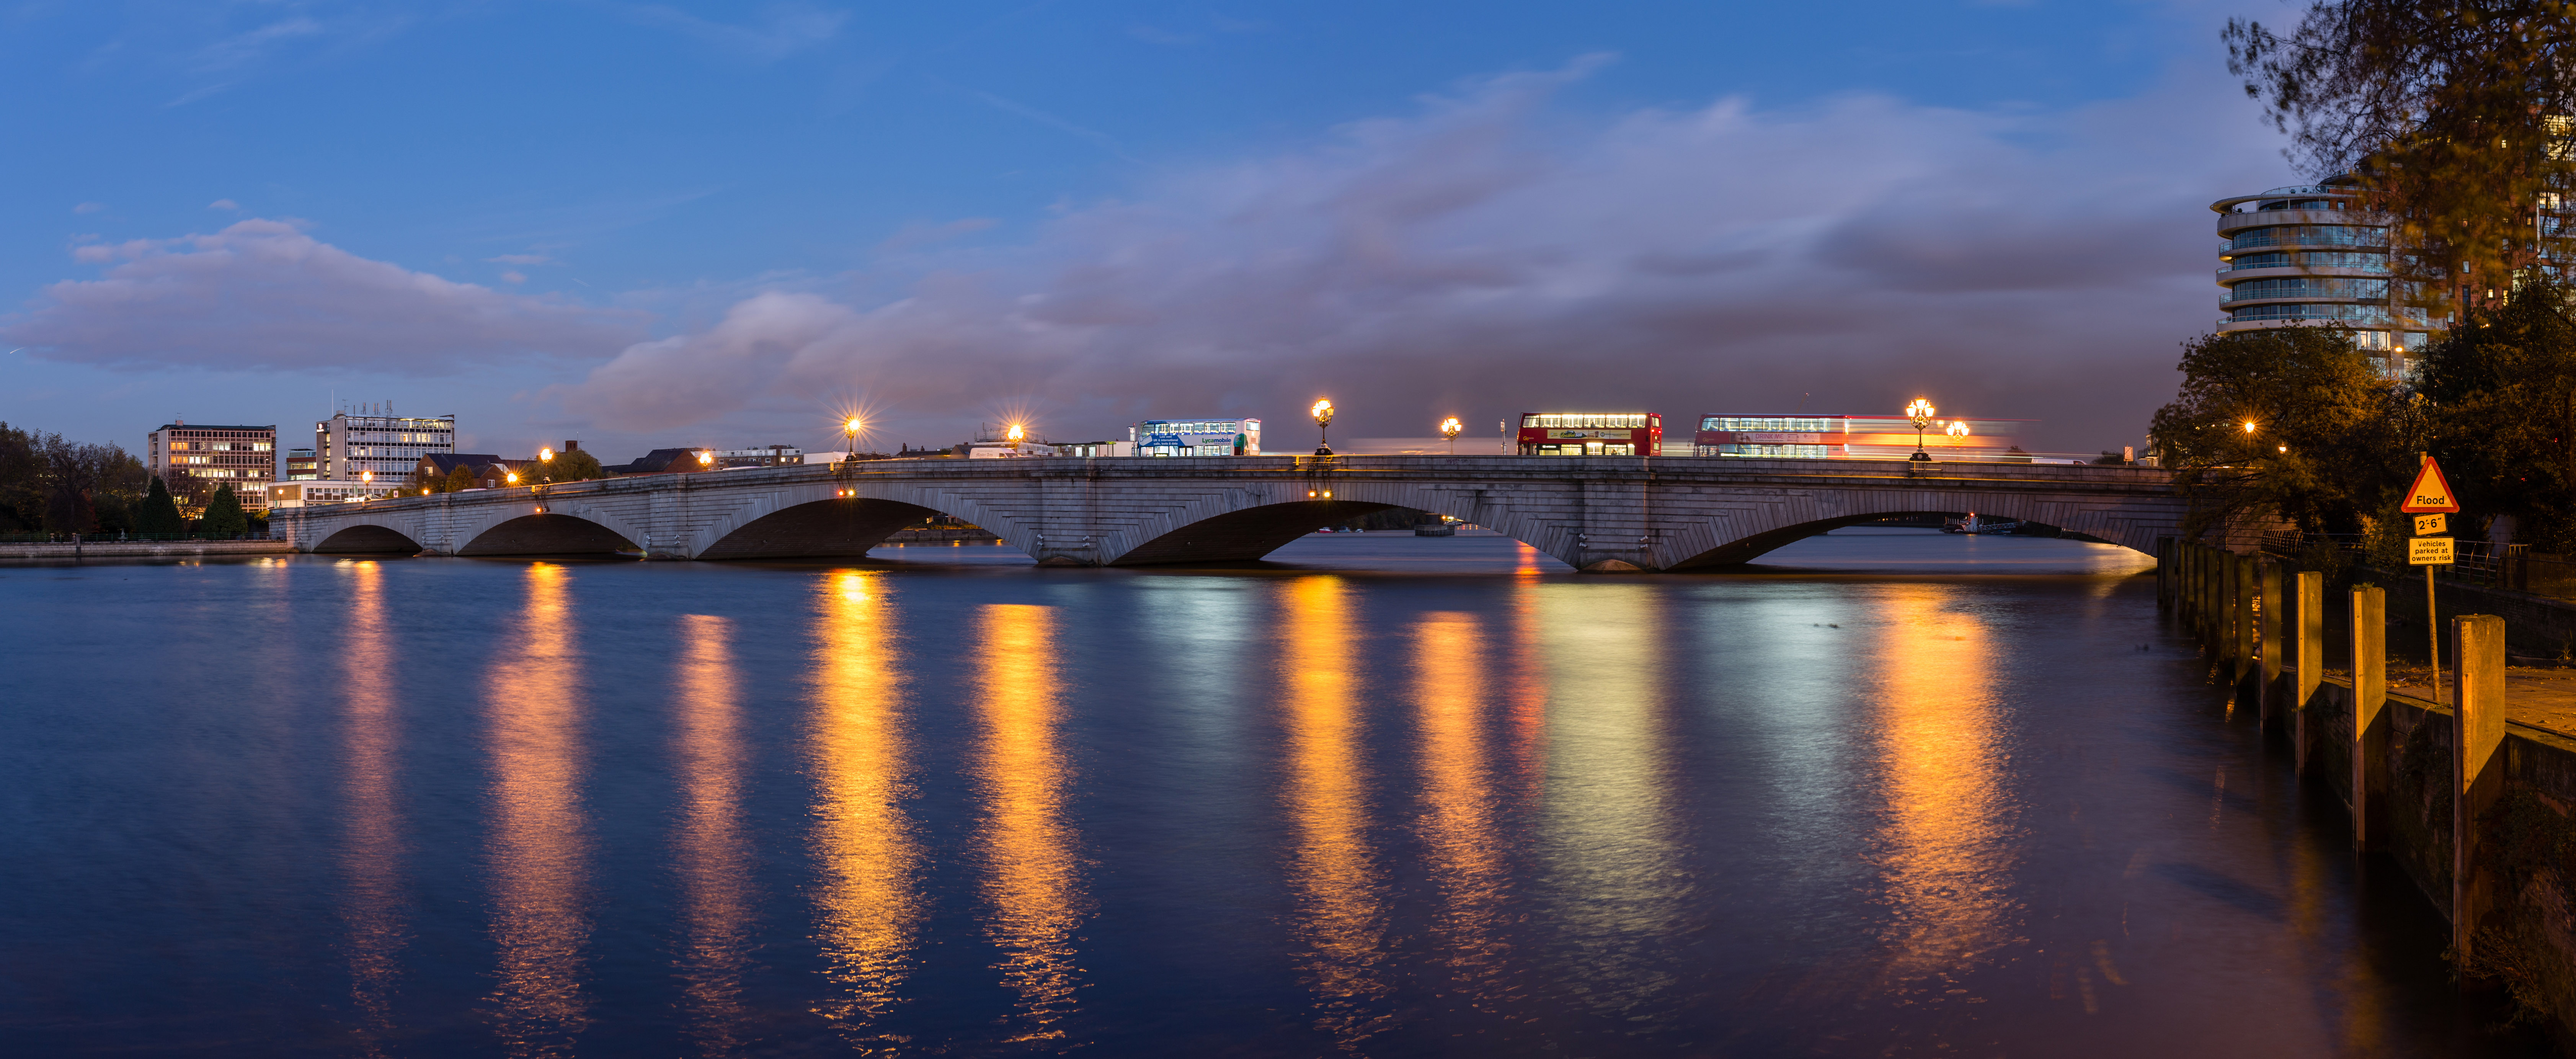 File:Putney Bridge at Dusk, London, UK - Diliff.jpg